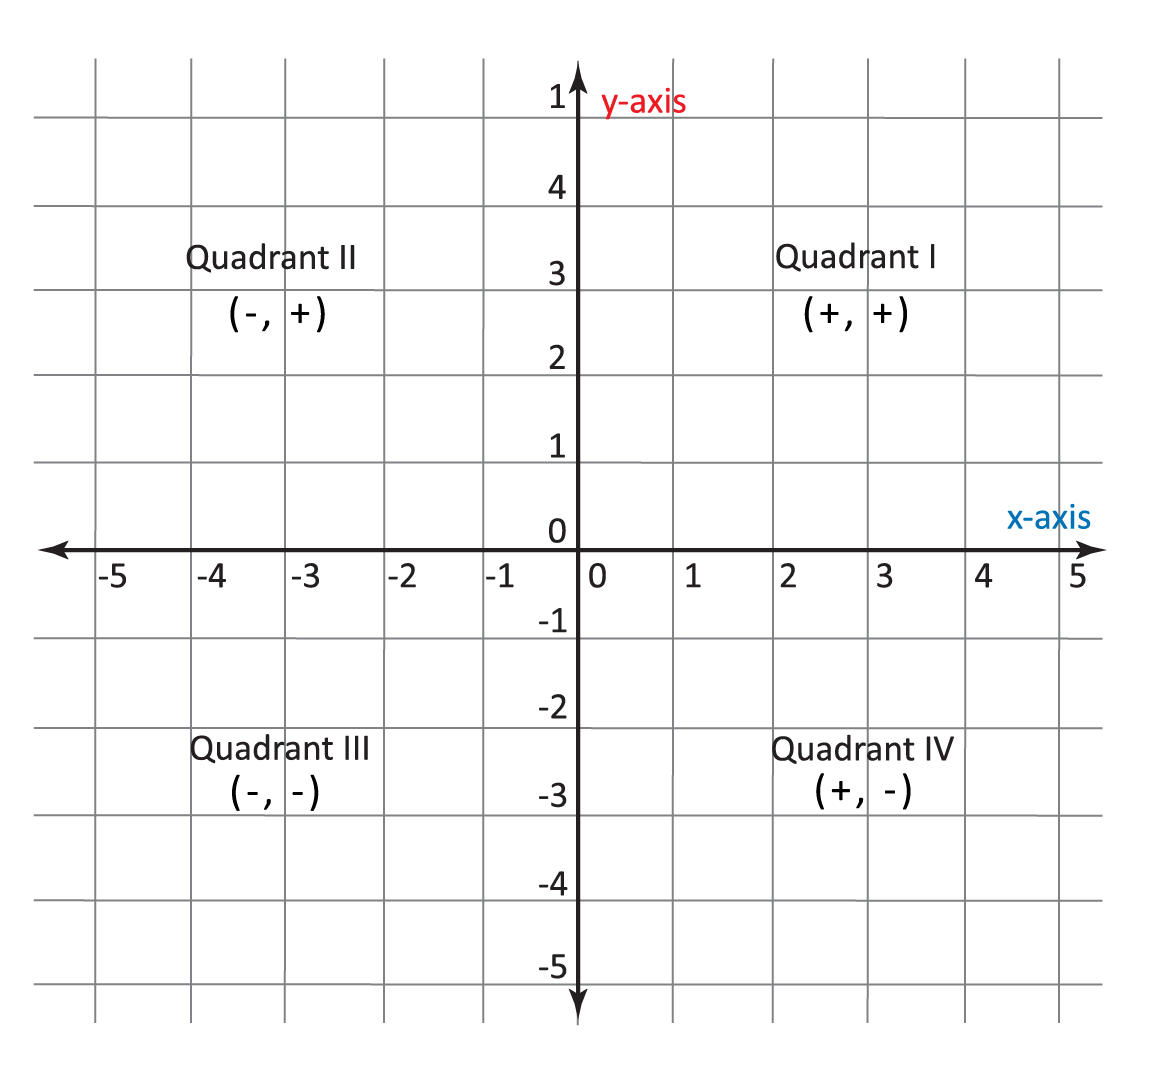 """coordinate grid, """"x-axis"""" label in blue, """"y-axis"""" label in red, top right section labeled """"Quadrant I (+, +)"""", top left section labeled """"Quadrant II (-, +)"""", bottom left section labeled """"Quadrant III (-, -)"""", bottom right section labeled """"Quadrant IV (+, -)"""""""